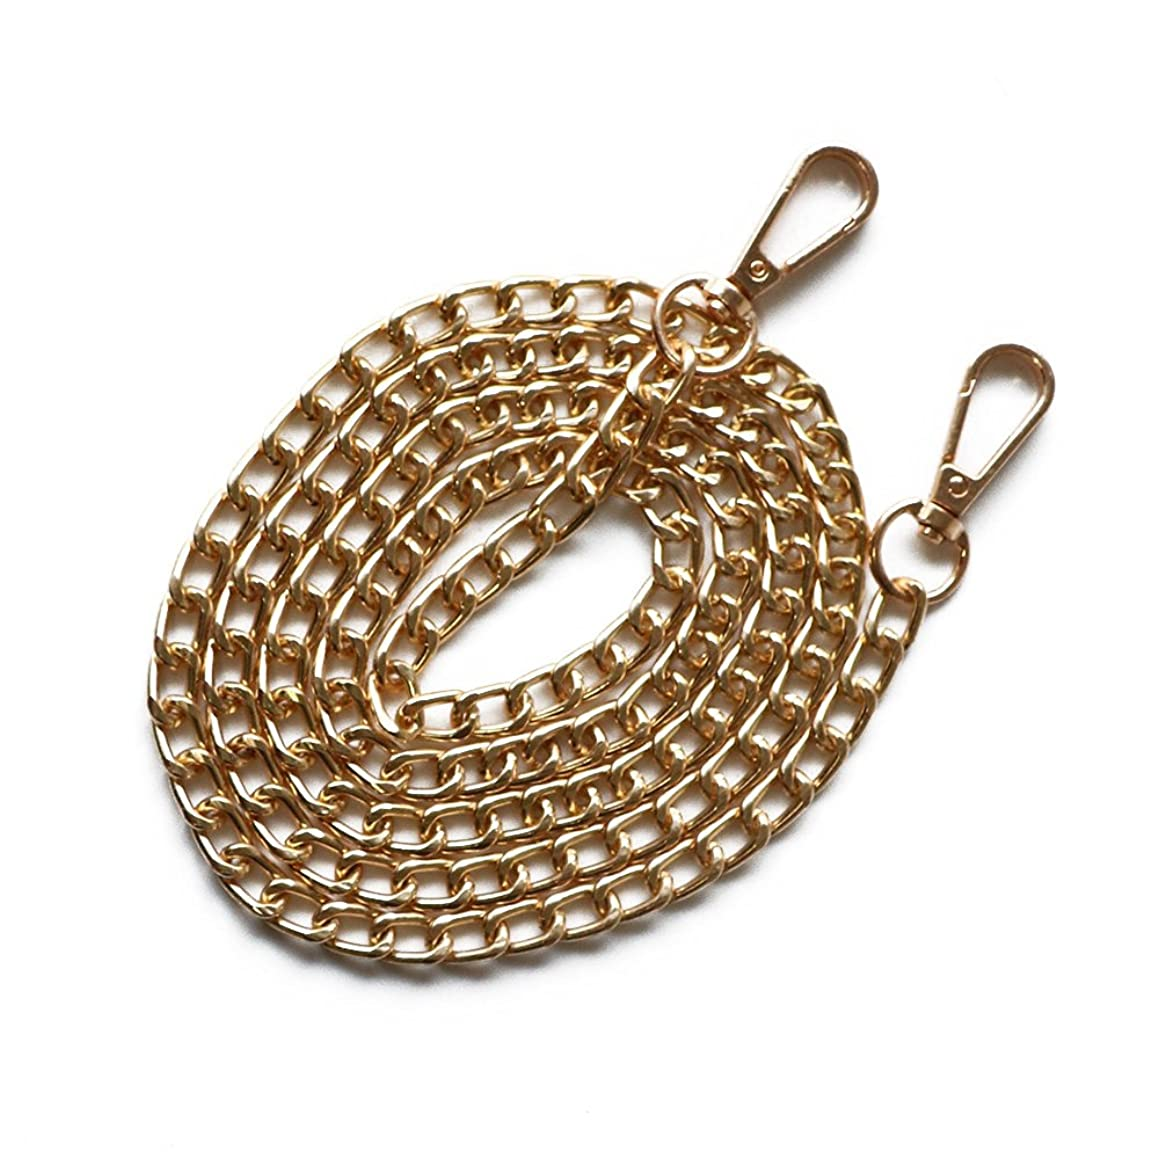 YEJI 9MM Width Iron Flat gold Chain Strap Handbags Replacement Chains for Clutch Satchel